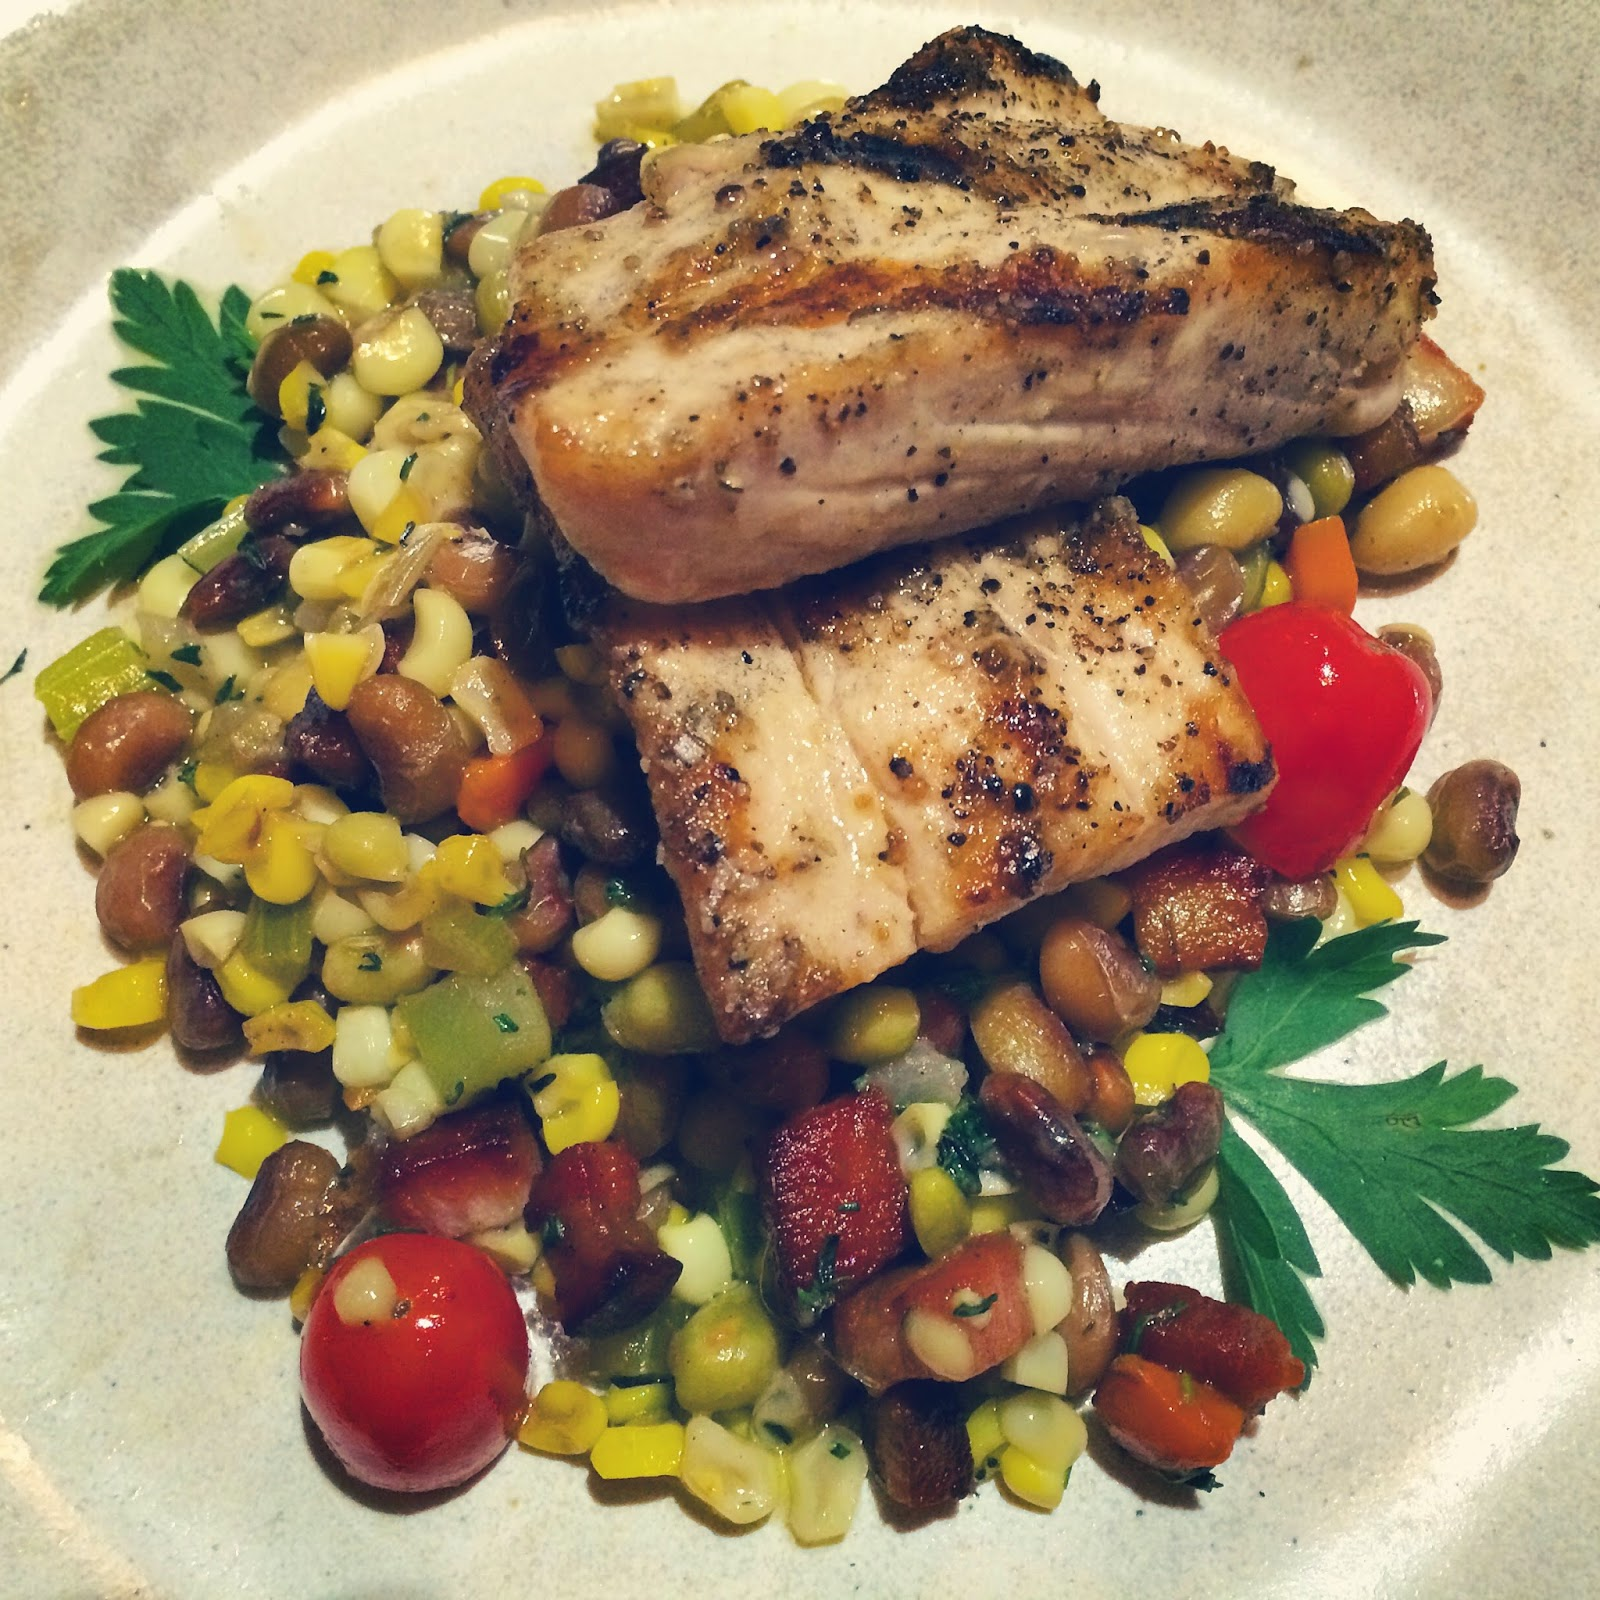 Fresh Gulf Wahoo served over a Summer Succotash with Sweet Corn, Field Peas, Cherry Tomatoes, Bacon Lardons, and Fresh Herbs